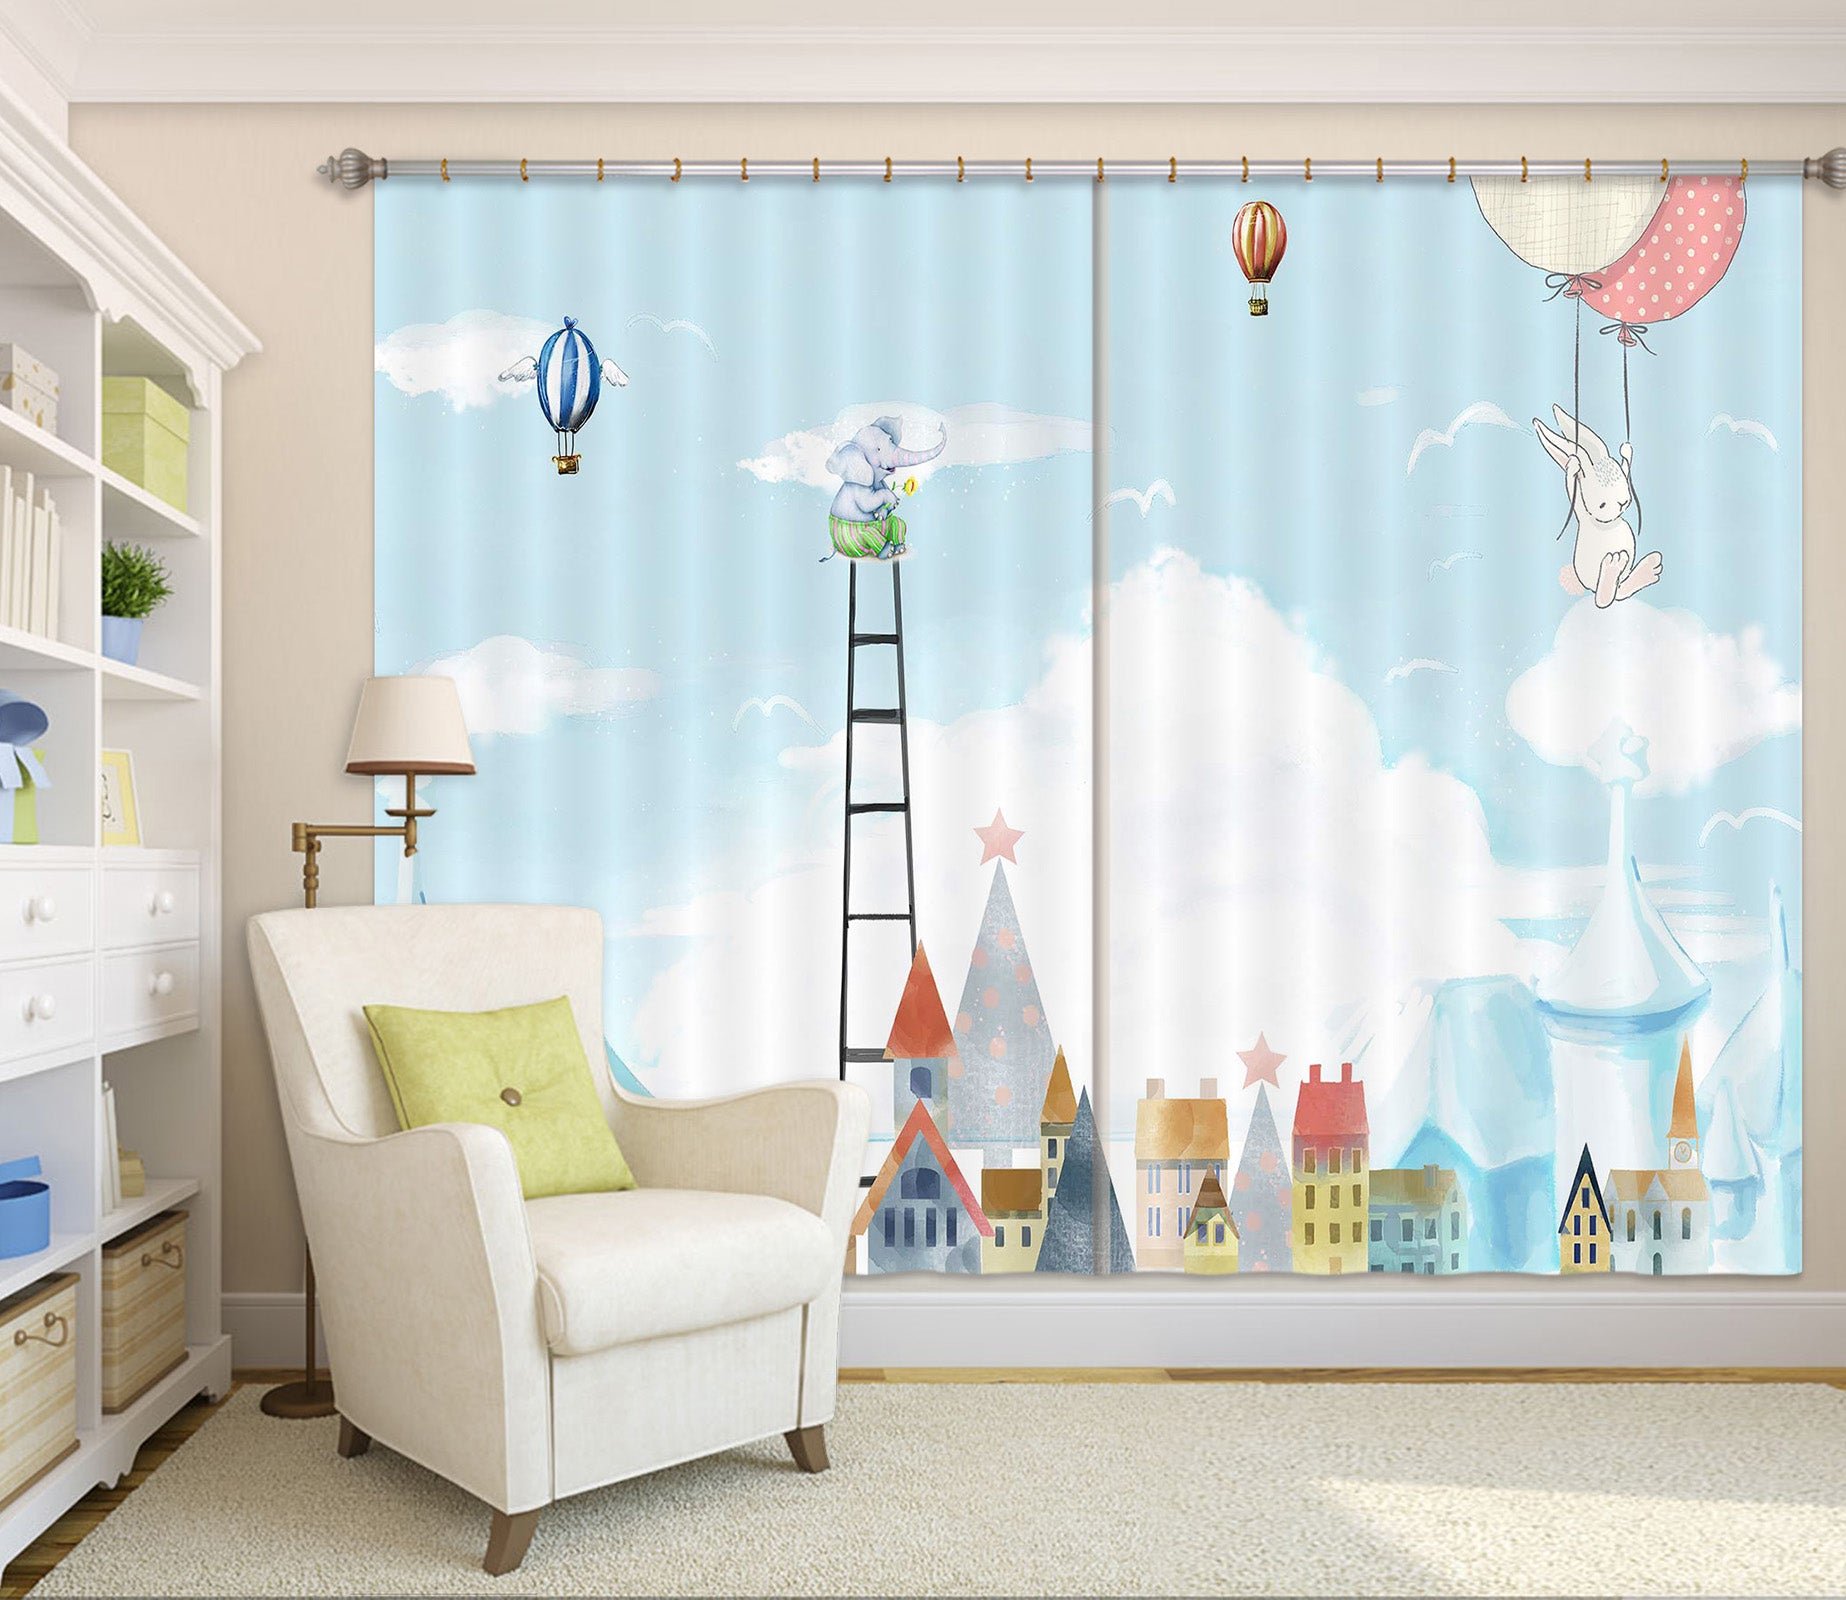 3D Children Kingdom 744 Curtains Drapes